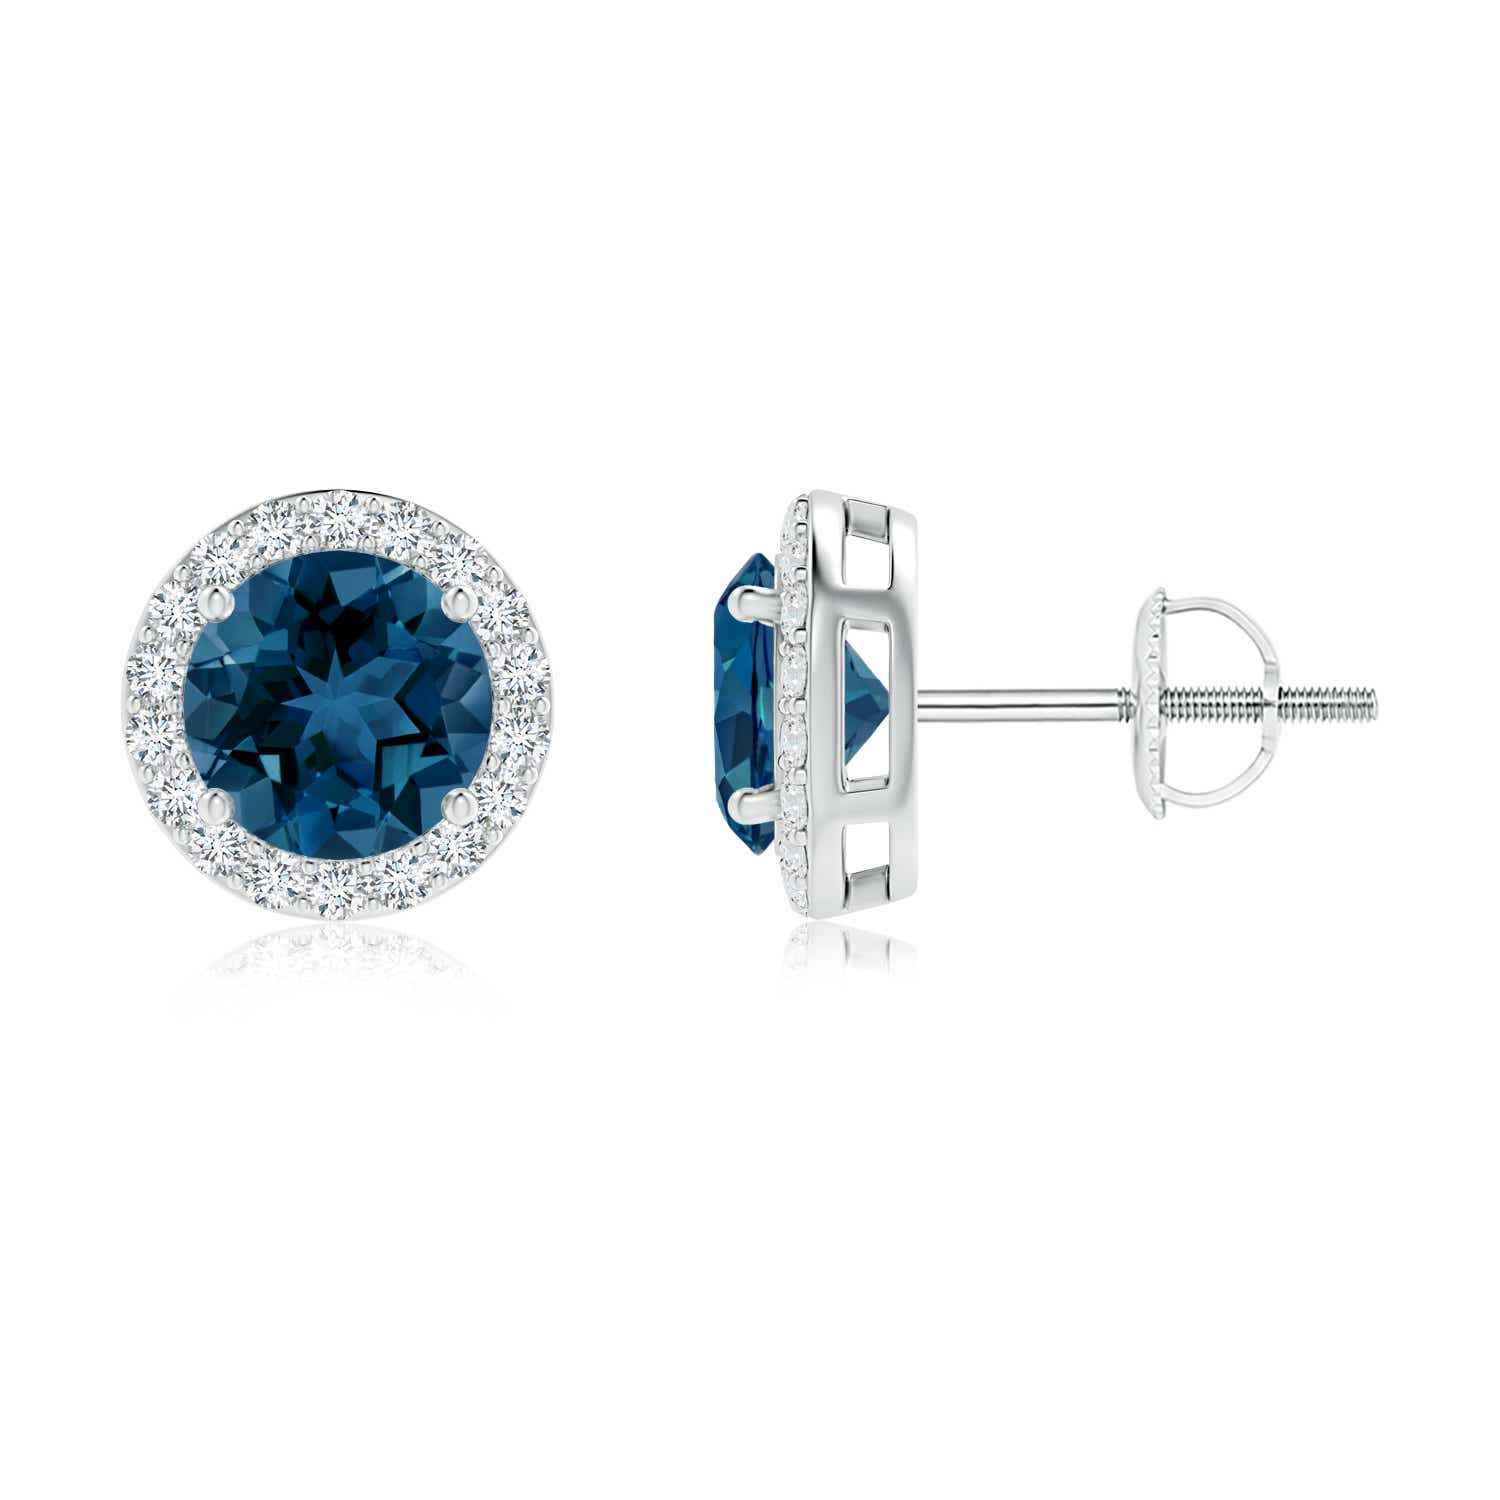 Angara Square Blue Sapphire and Diamond Halo Stud Earrings